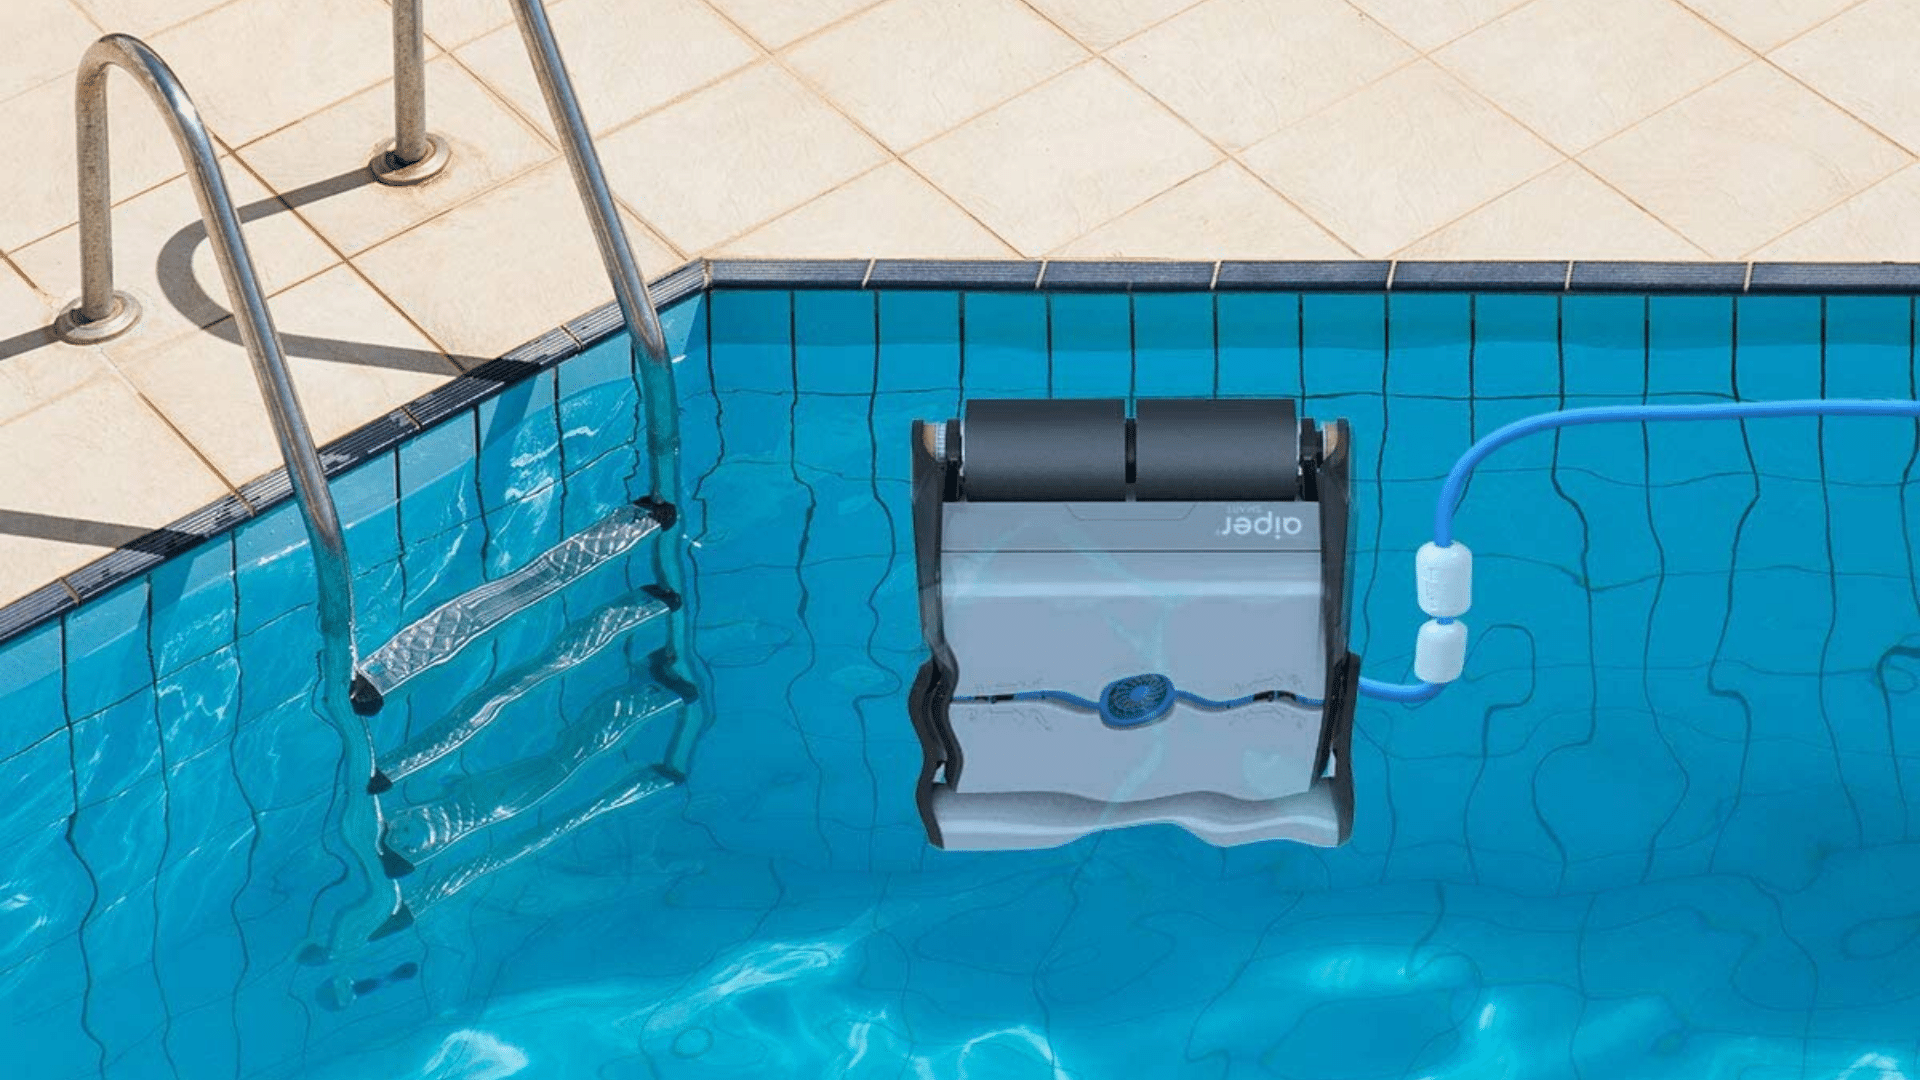 image of AIPER Automatic Robotic Pool Cleaner climbing wall